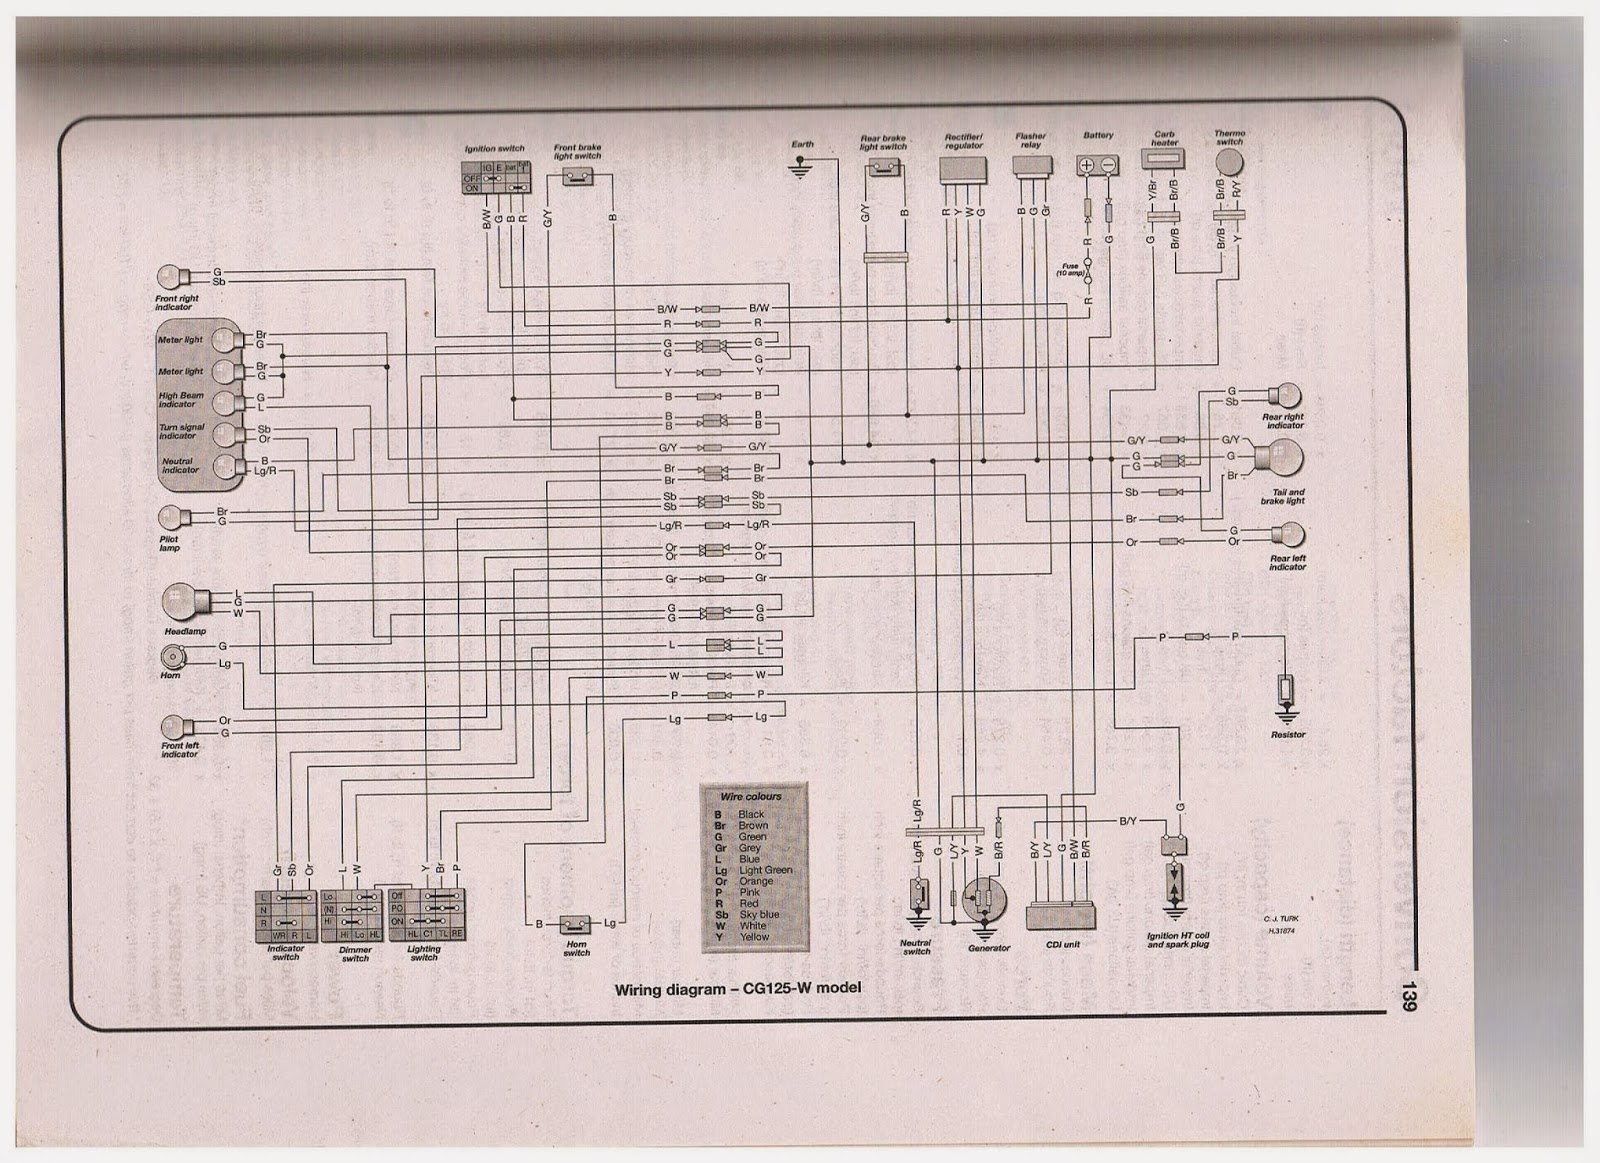 Stunning ct70 wiring diagram photos the best electrical circuit honda zb50 wiring diagram cheapraybanclubmaster Images